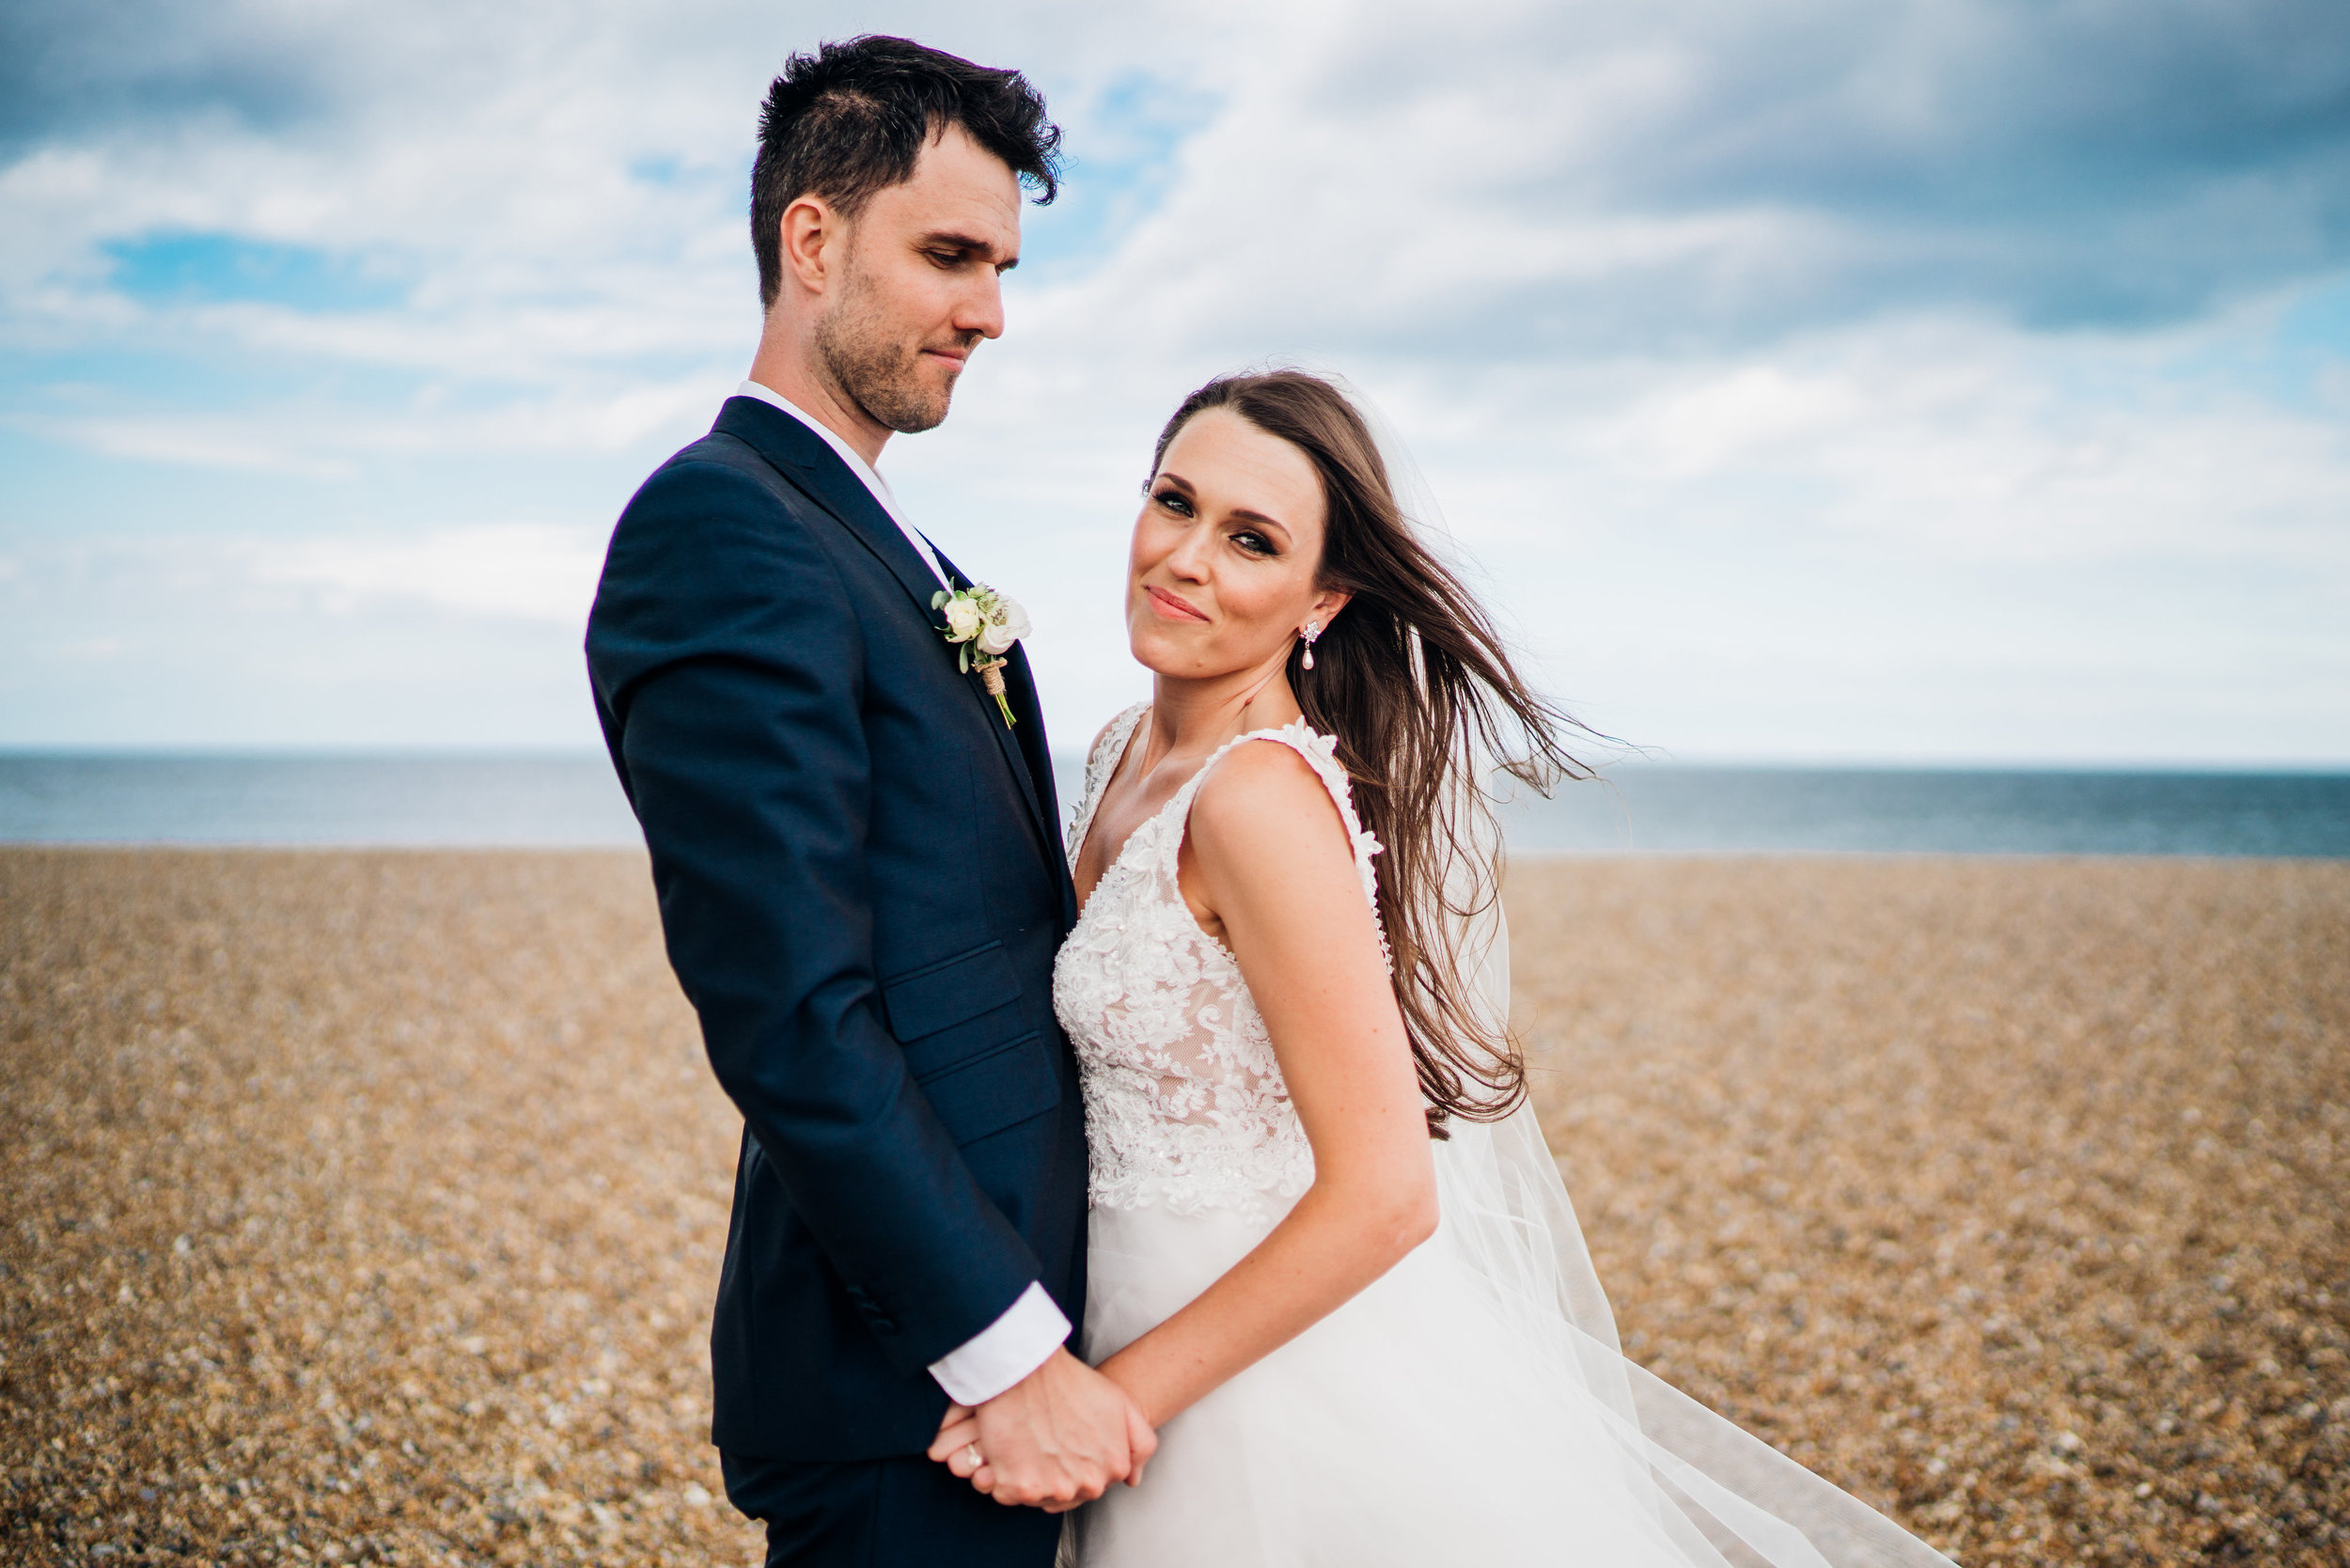 Lisa caldognetto  makeup Bride on beach by Abigail Steed photography